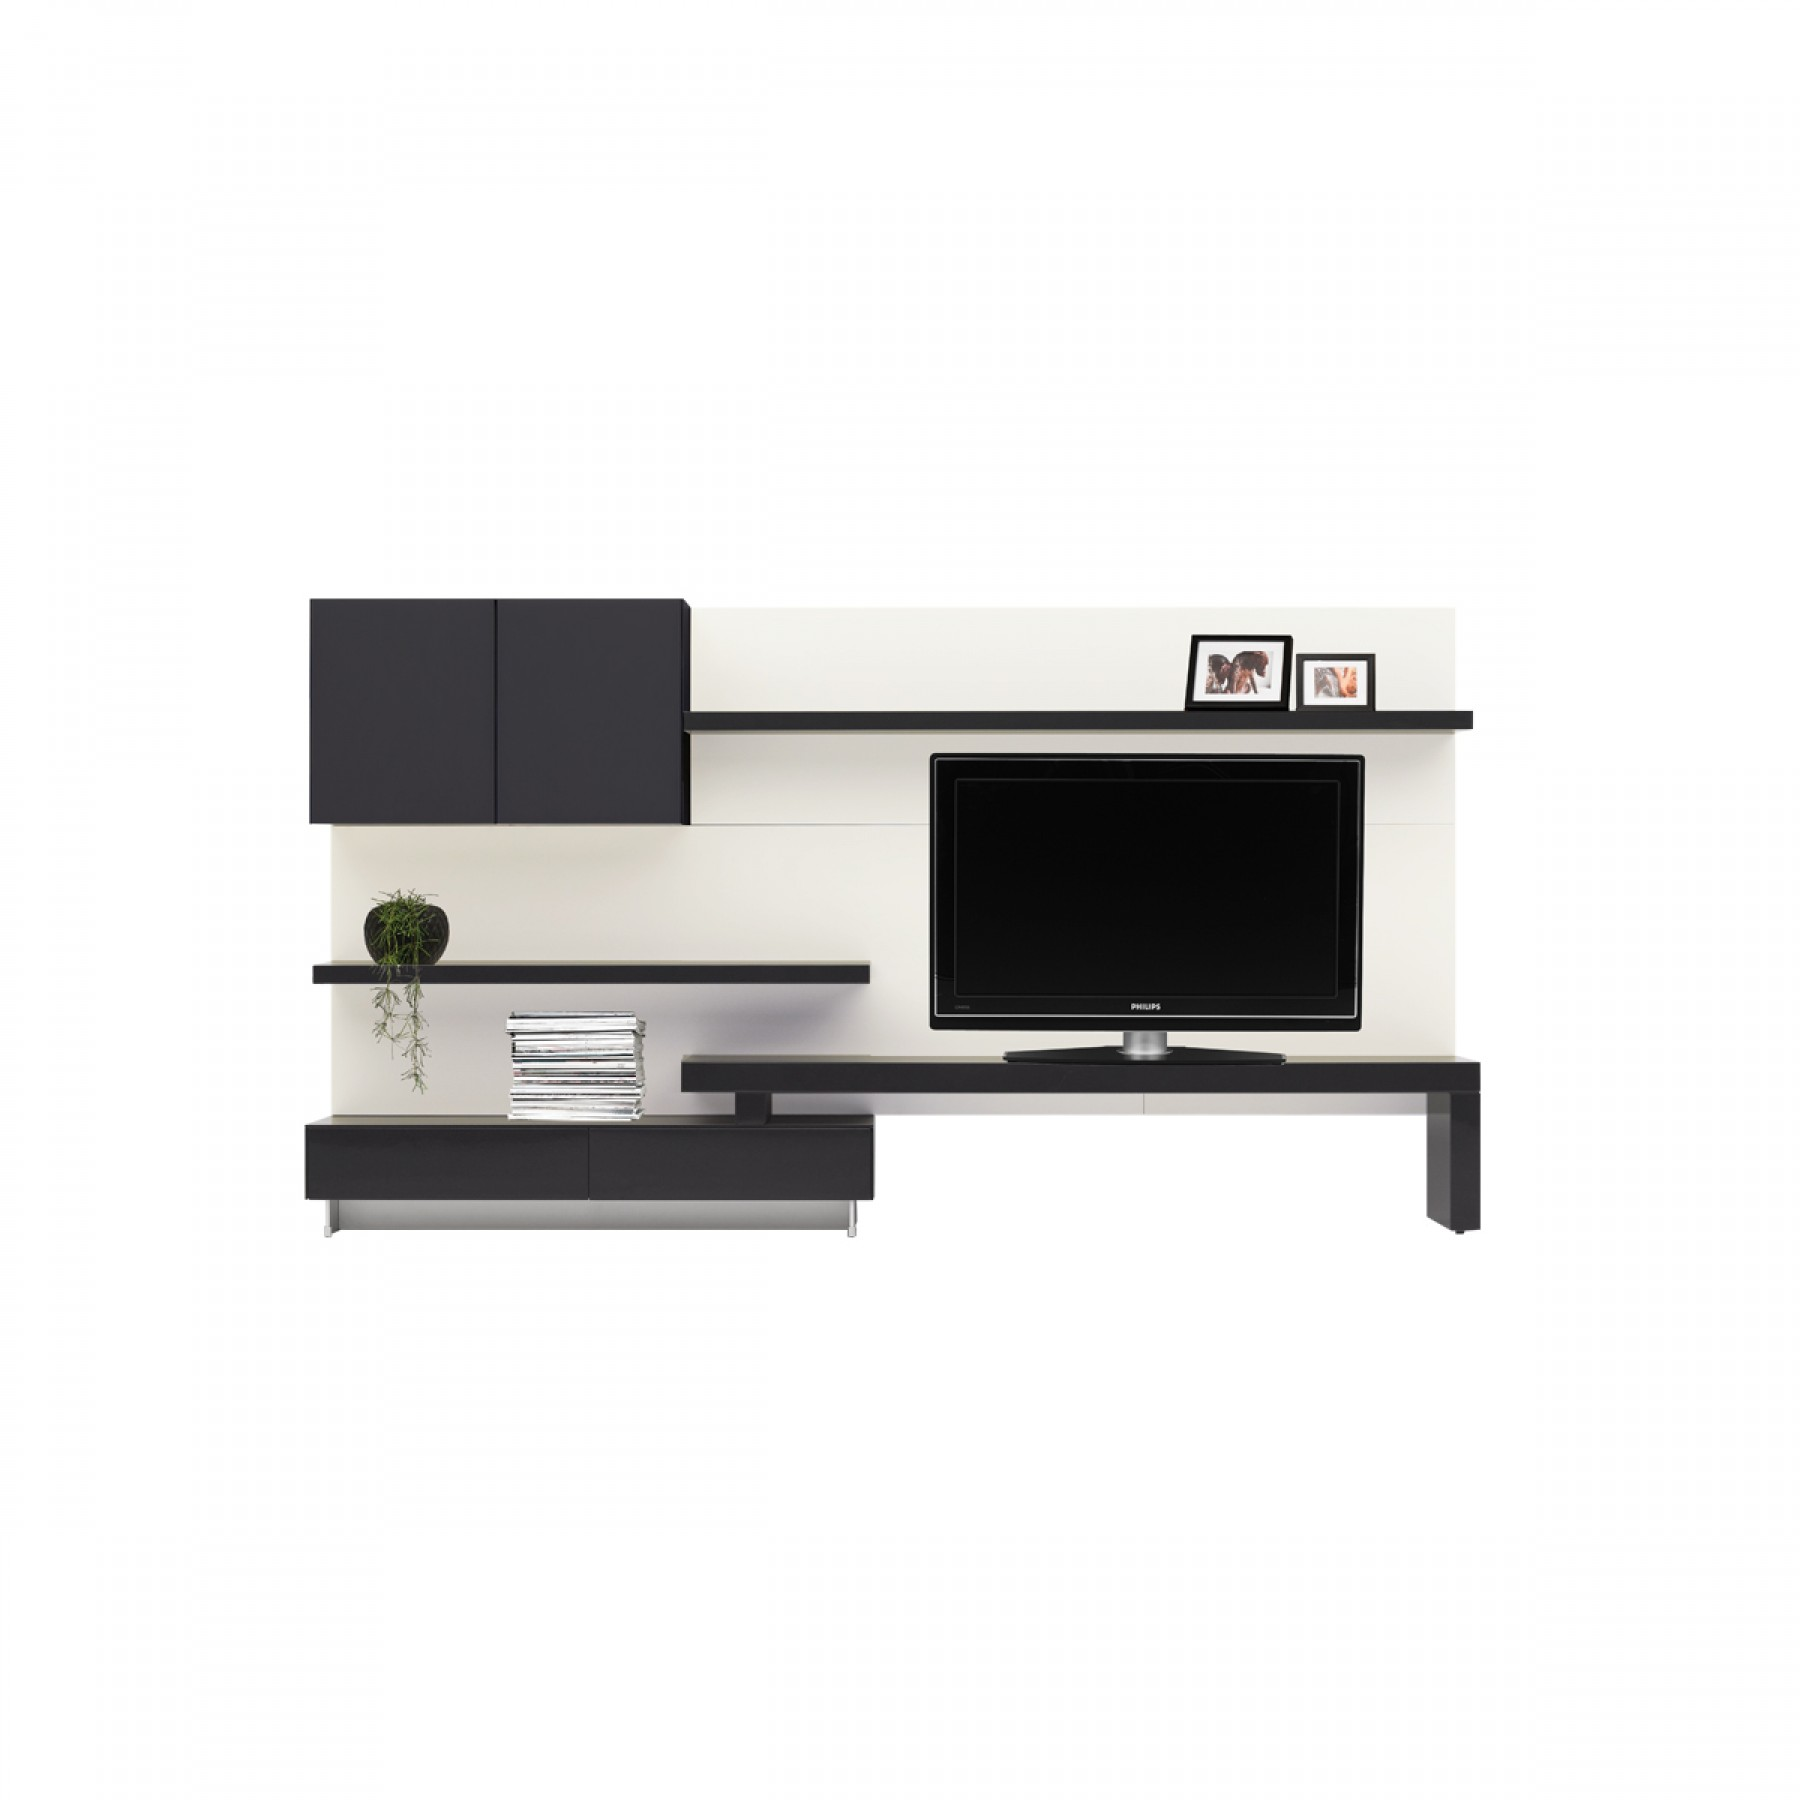 Sofa Outlet Sydney Images Perth Product Flamant